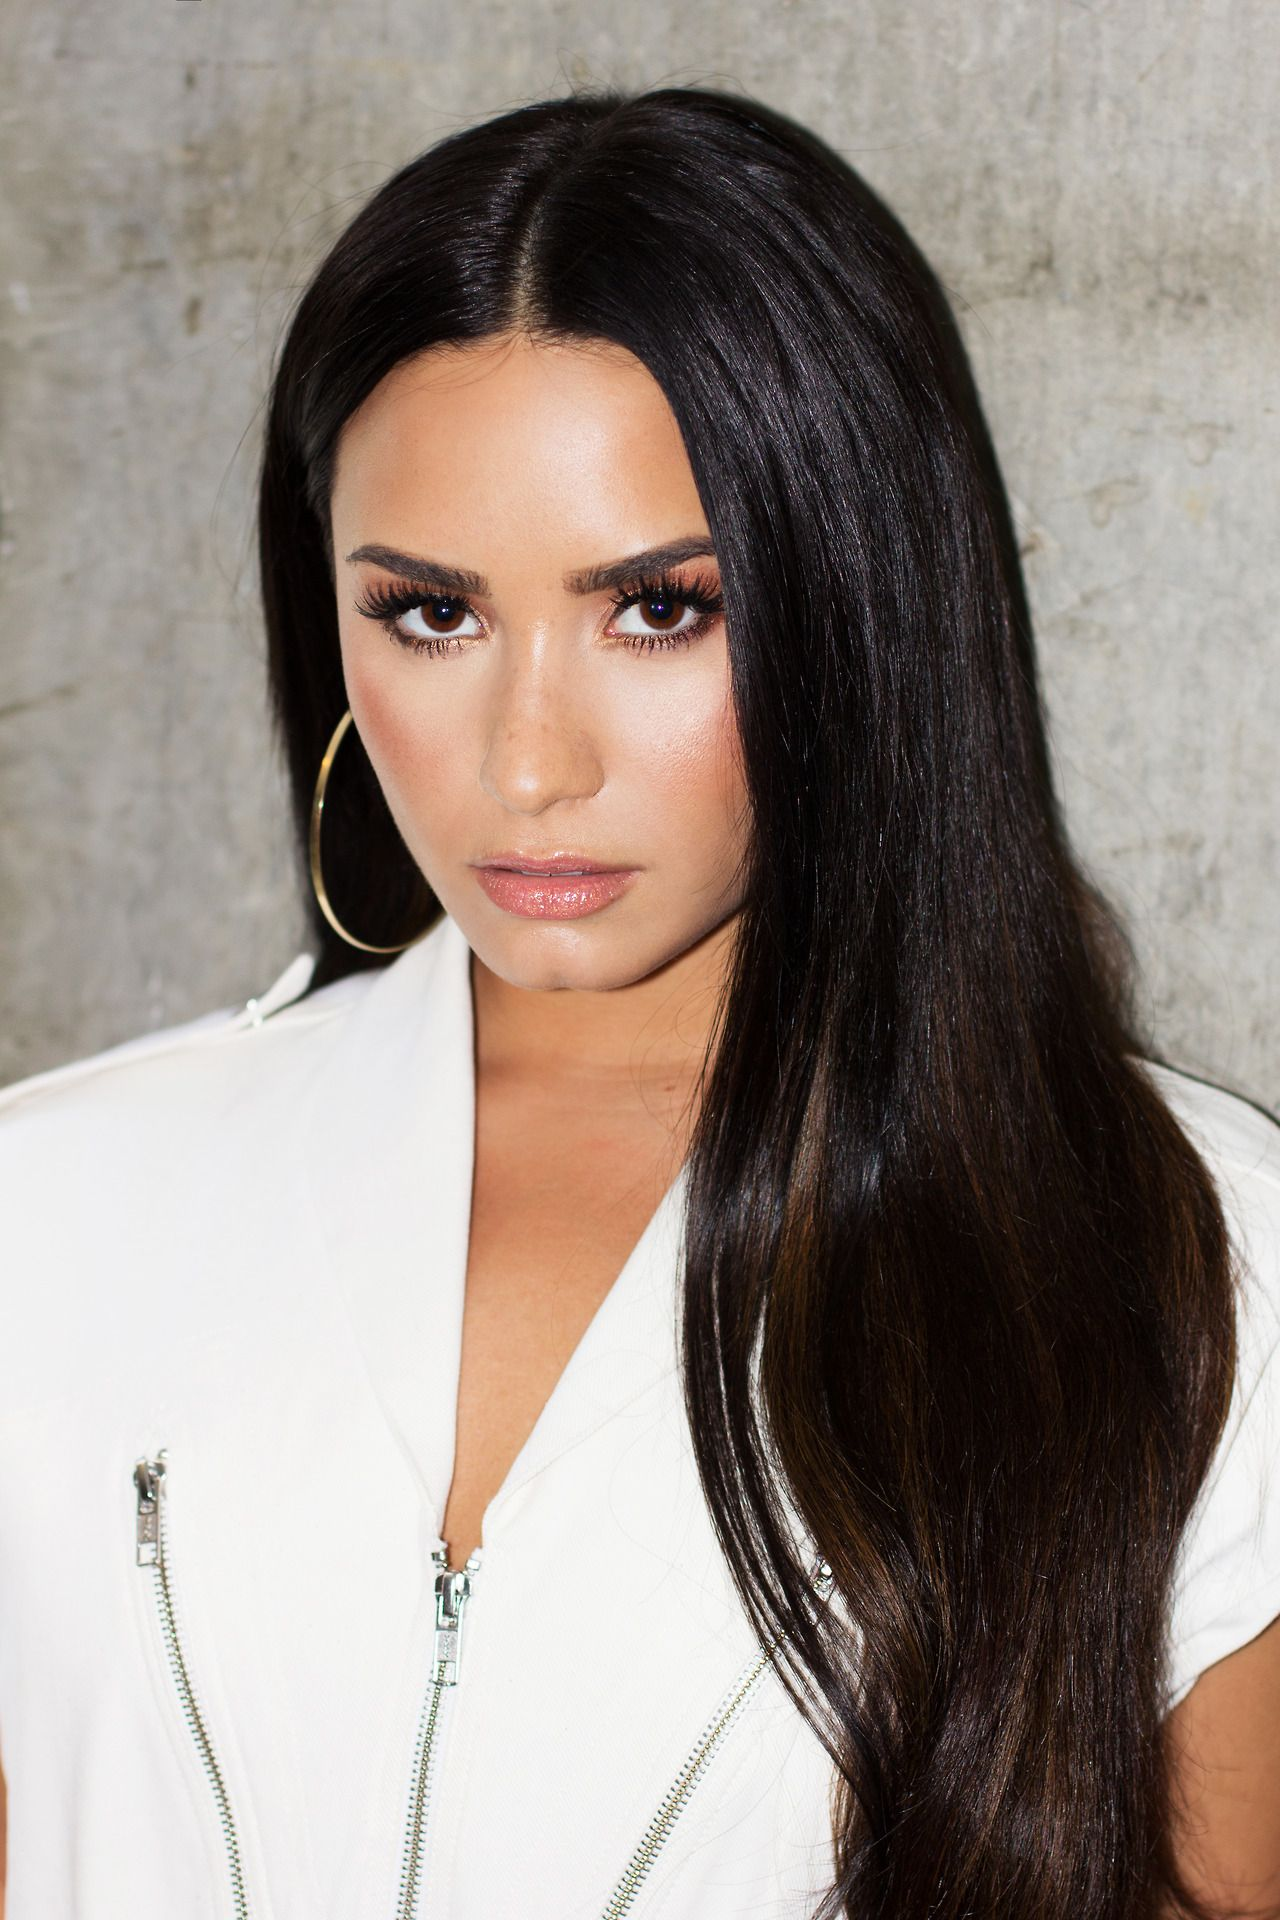 demi lovato - photo #25